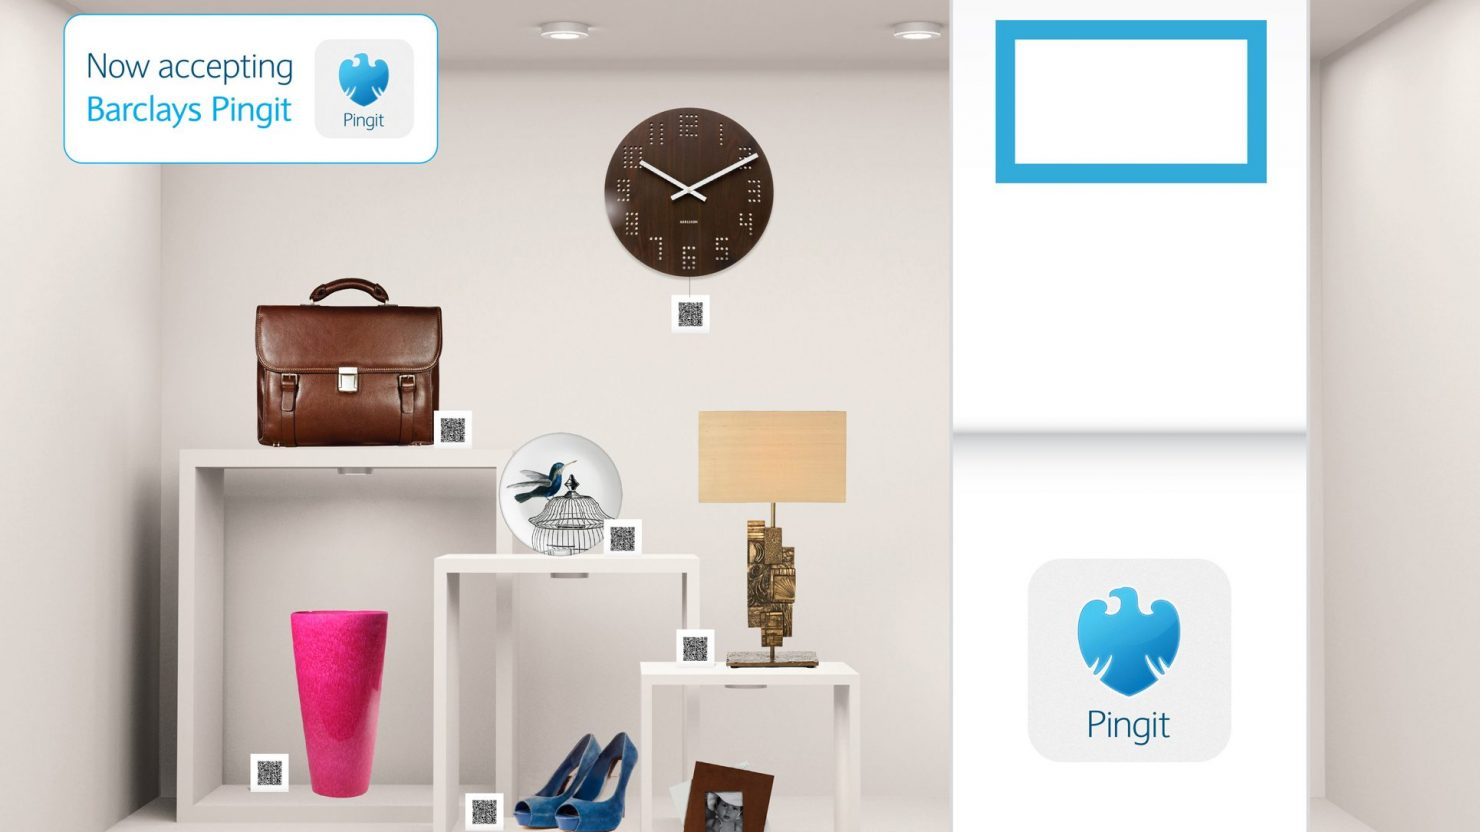 Exhibition stand design for Barclays Pingit